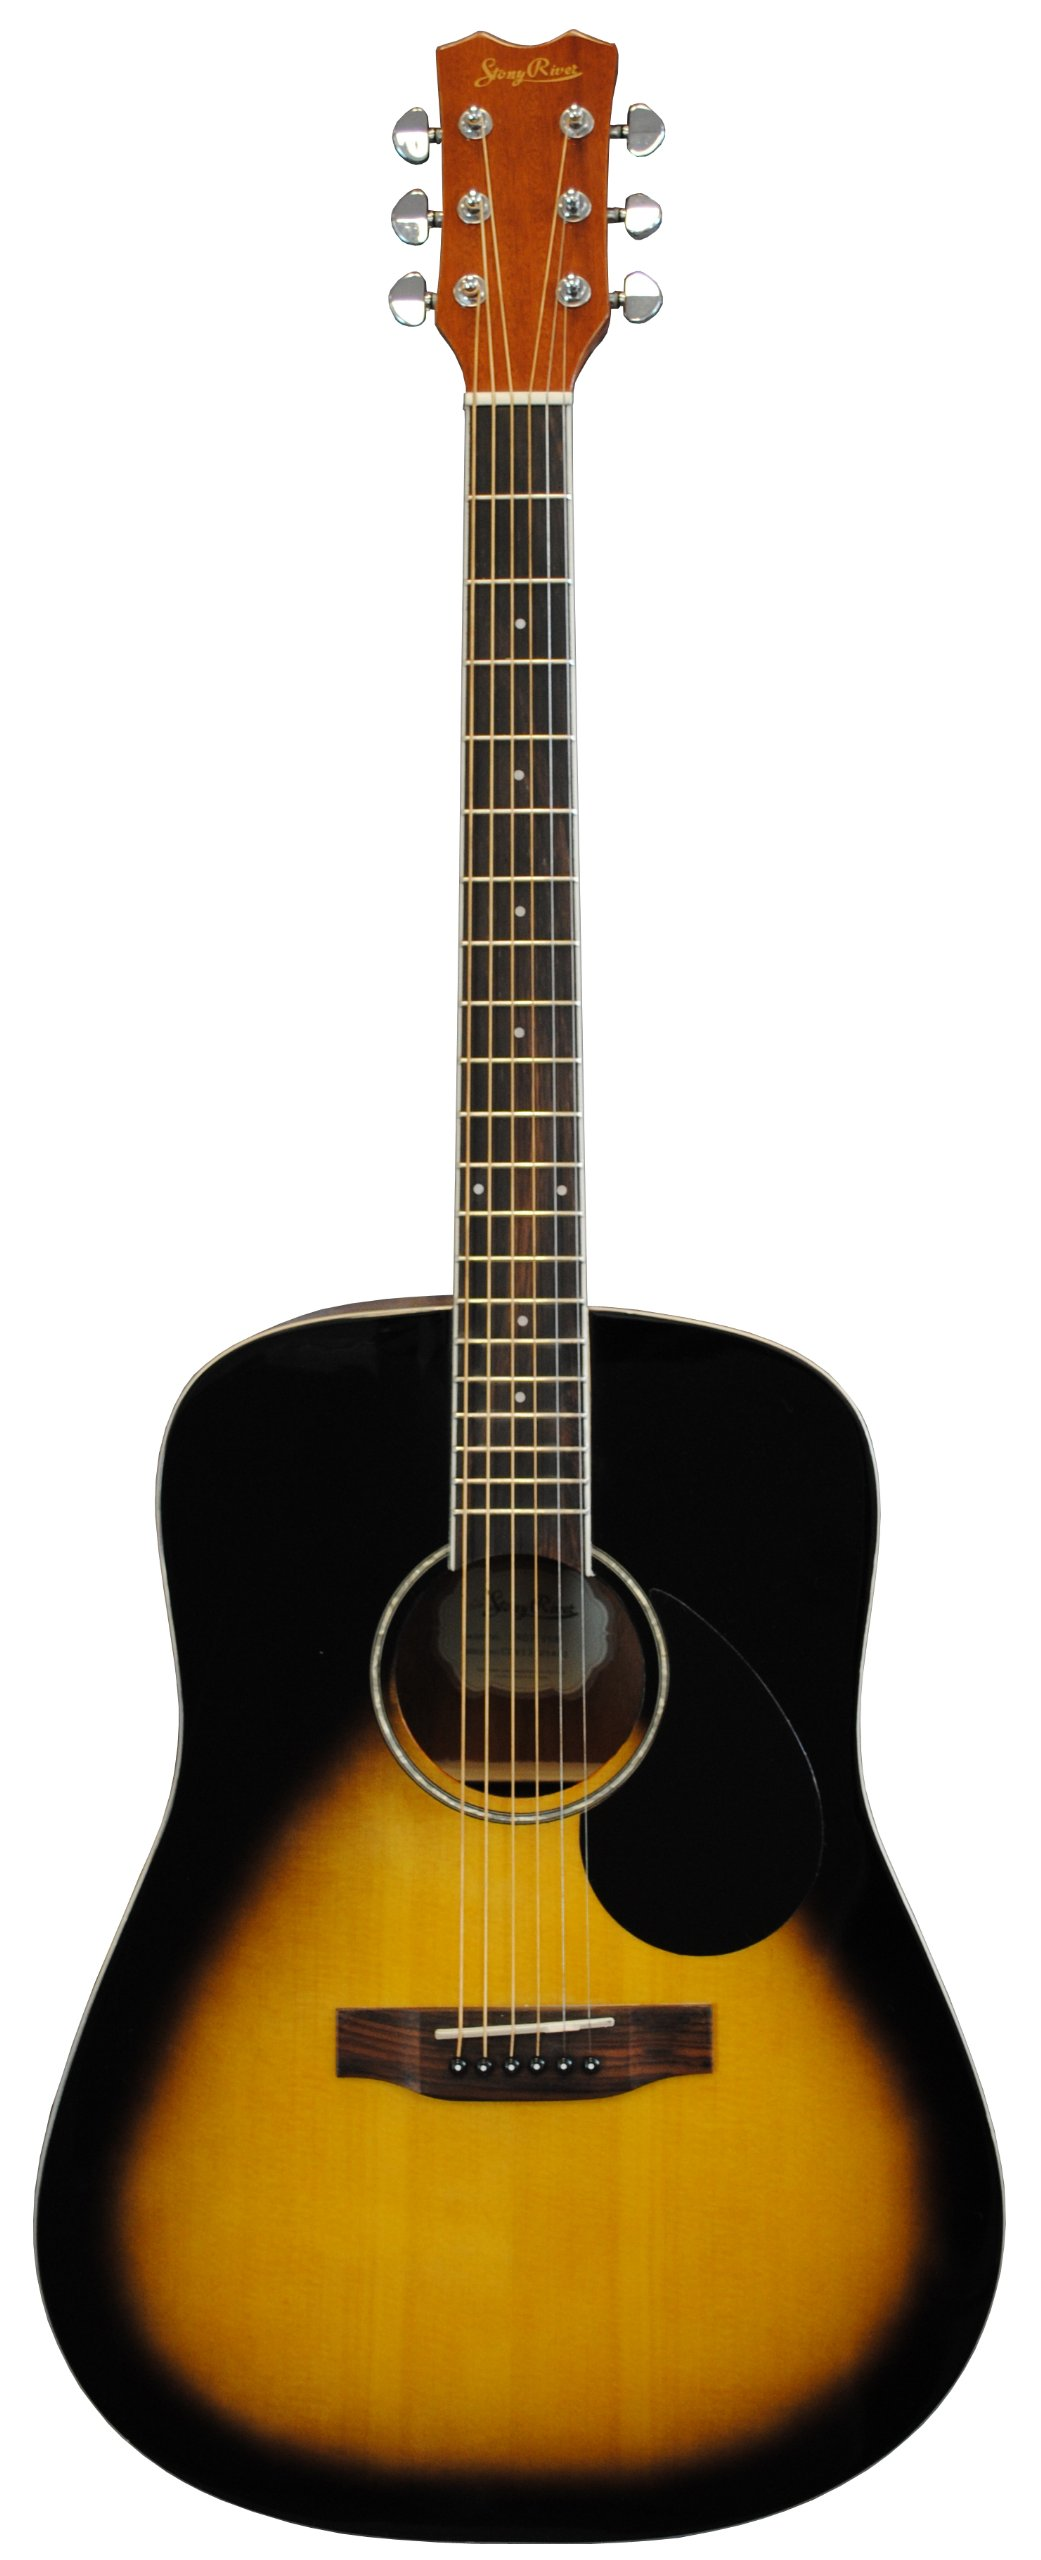 Stony River SRD2 VSB Dreadnought Acoustic Guitar, Vintage Sunburst by Stony River